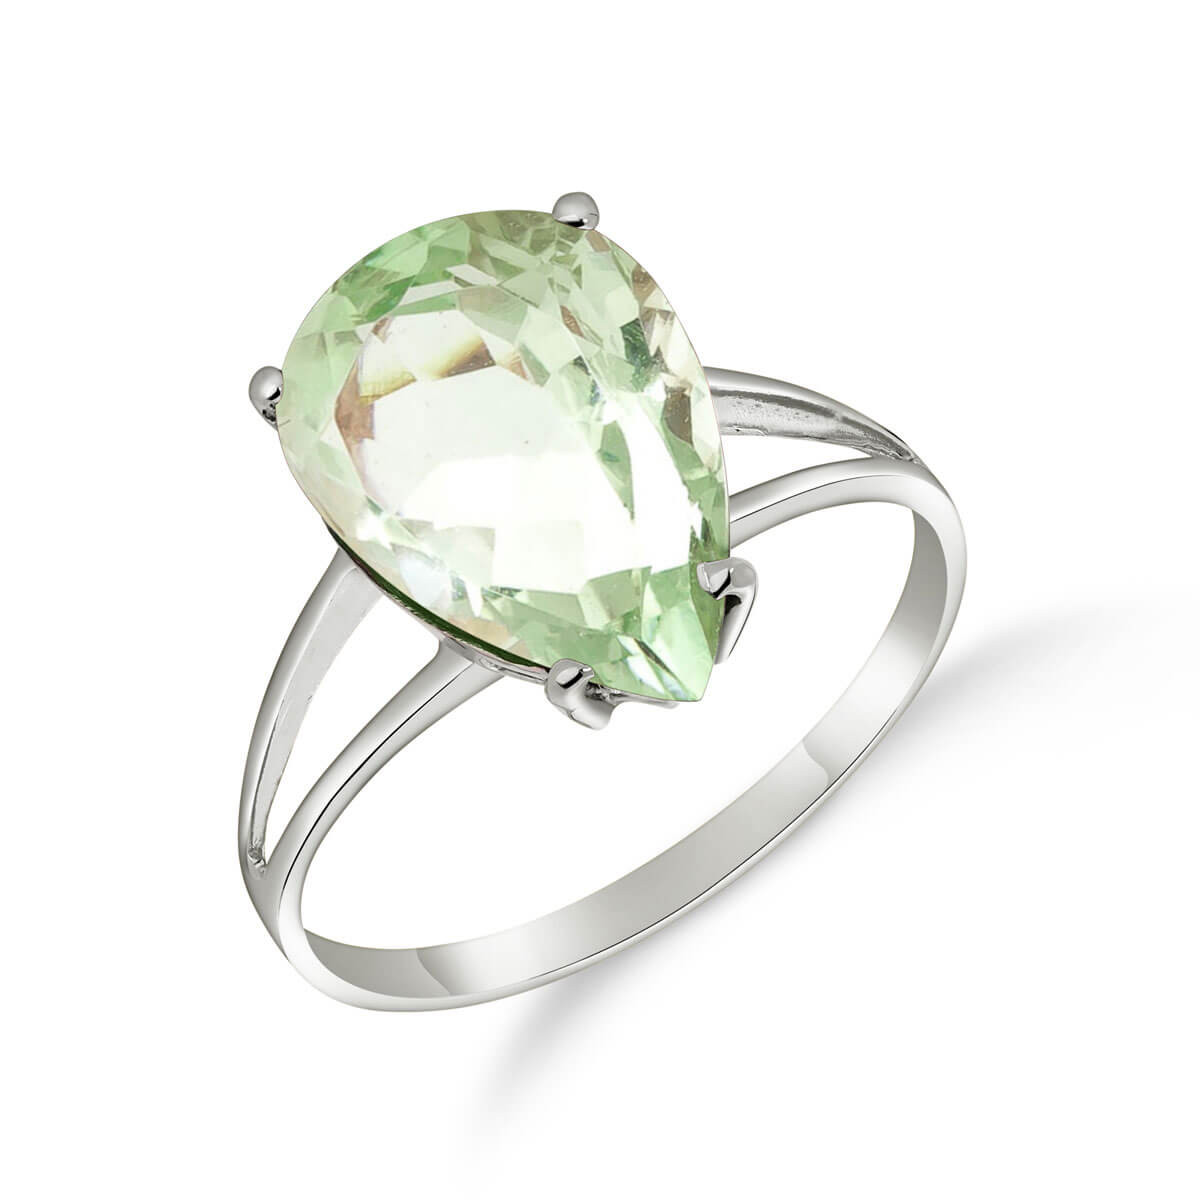 1c58f0765b272 Green Amethyst Pear Drop Ring 5 ct in 18ct White Gold